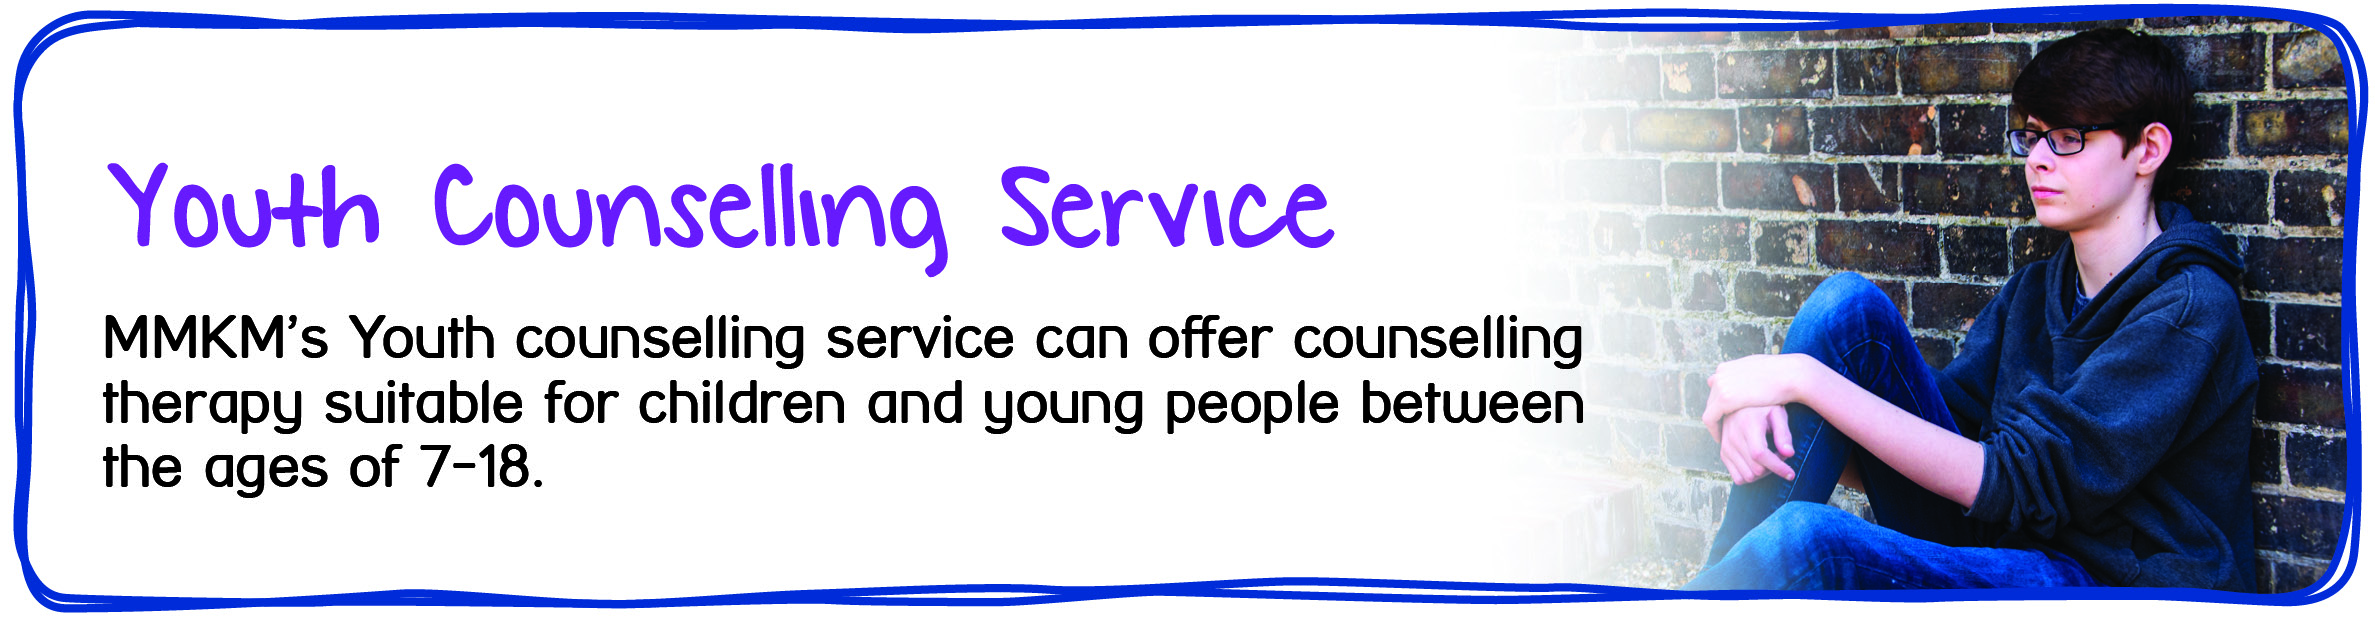 Youth Services - Youth Counselling Service. MMKM's Youth Counselling service can offer counselling therapy suitable for children and young people between the ages of 7 and 18.